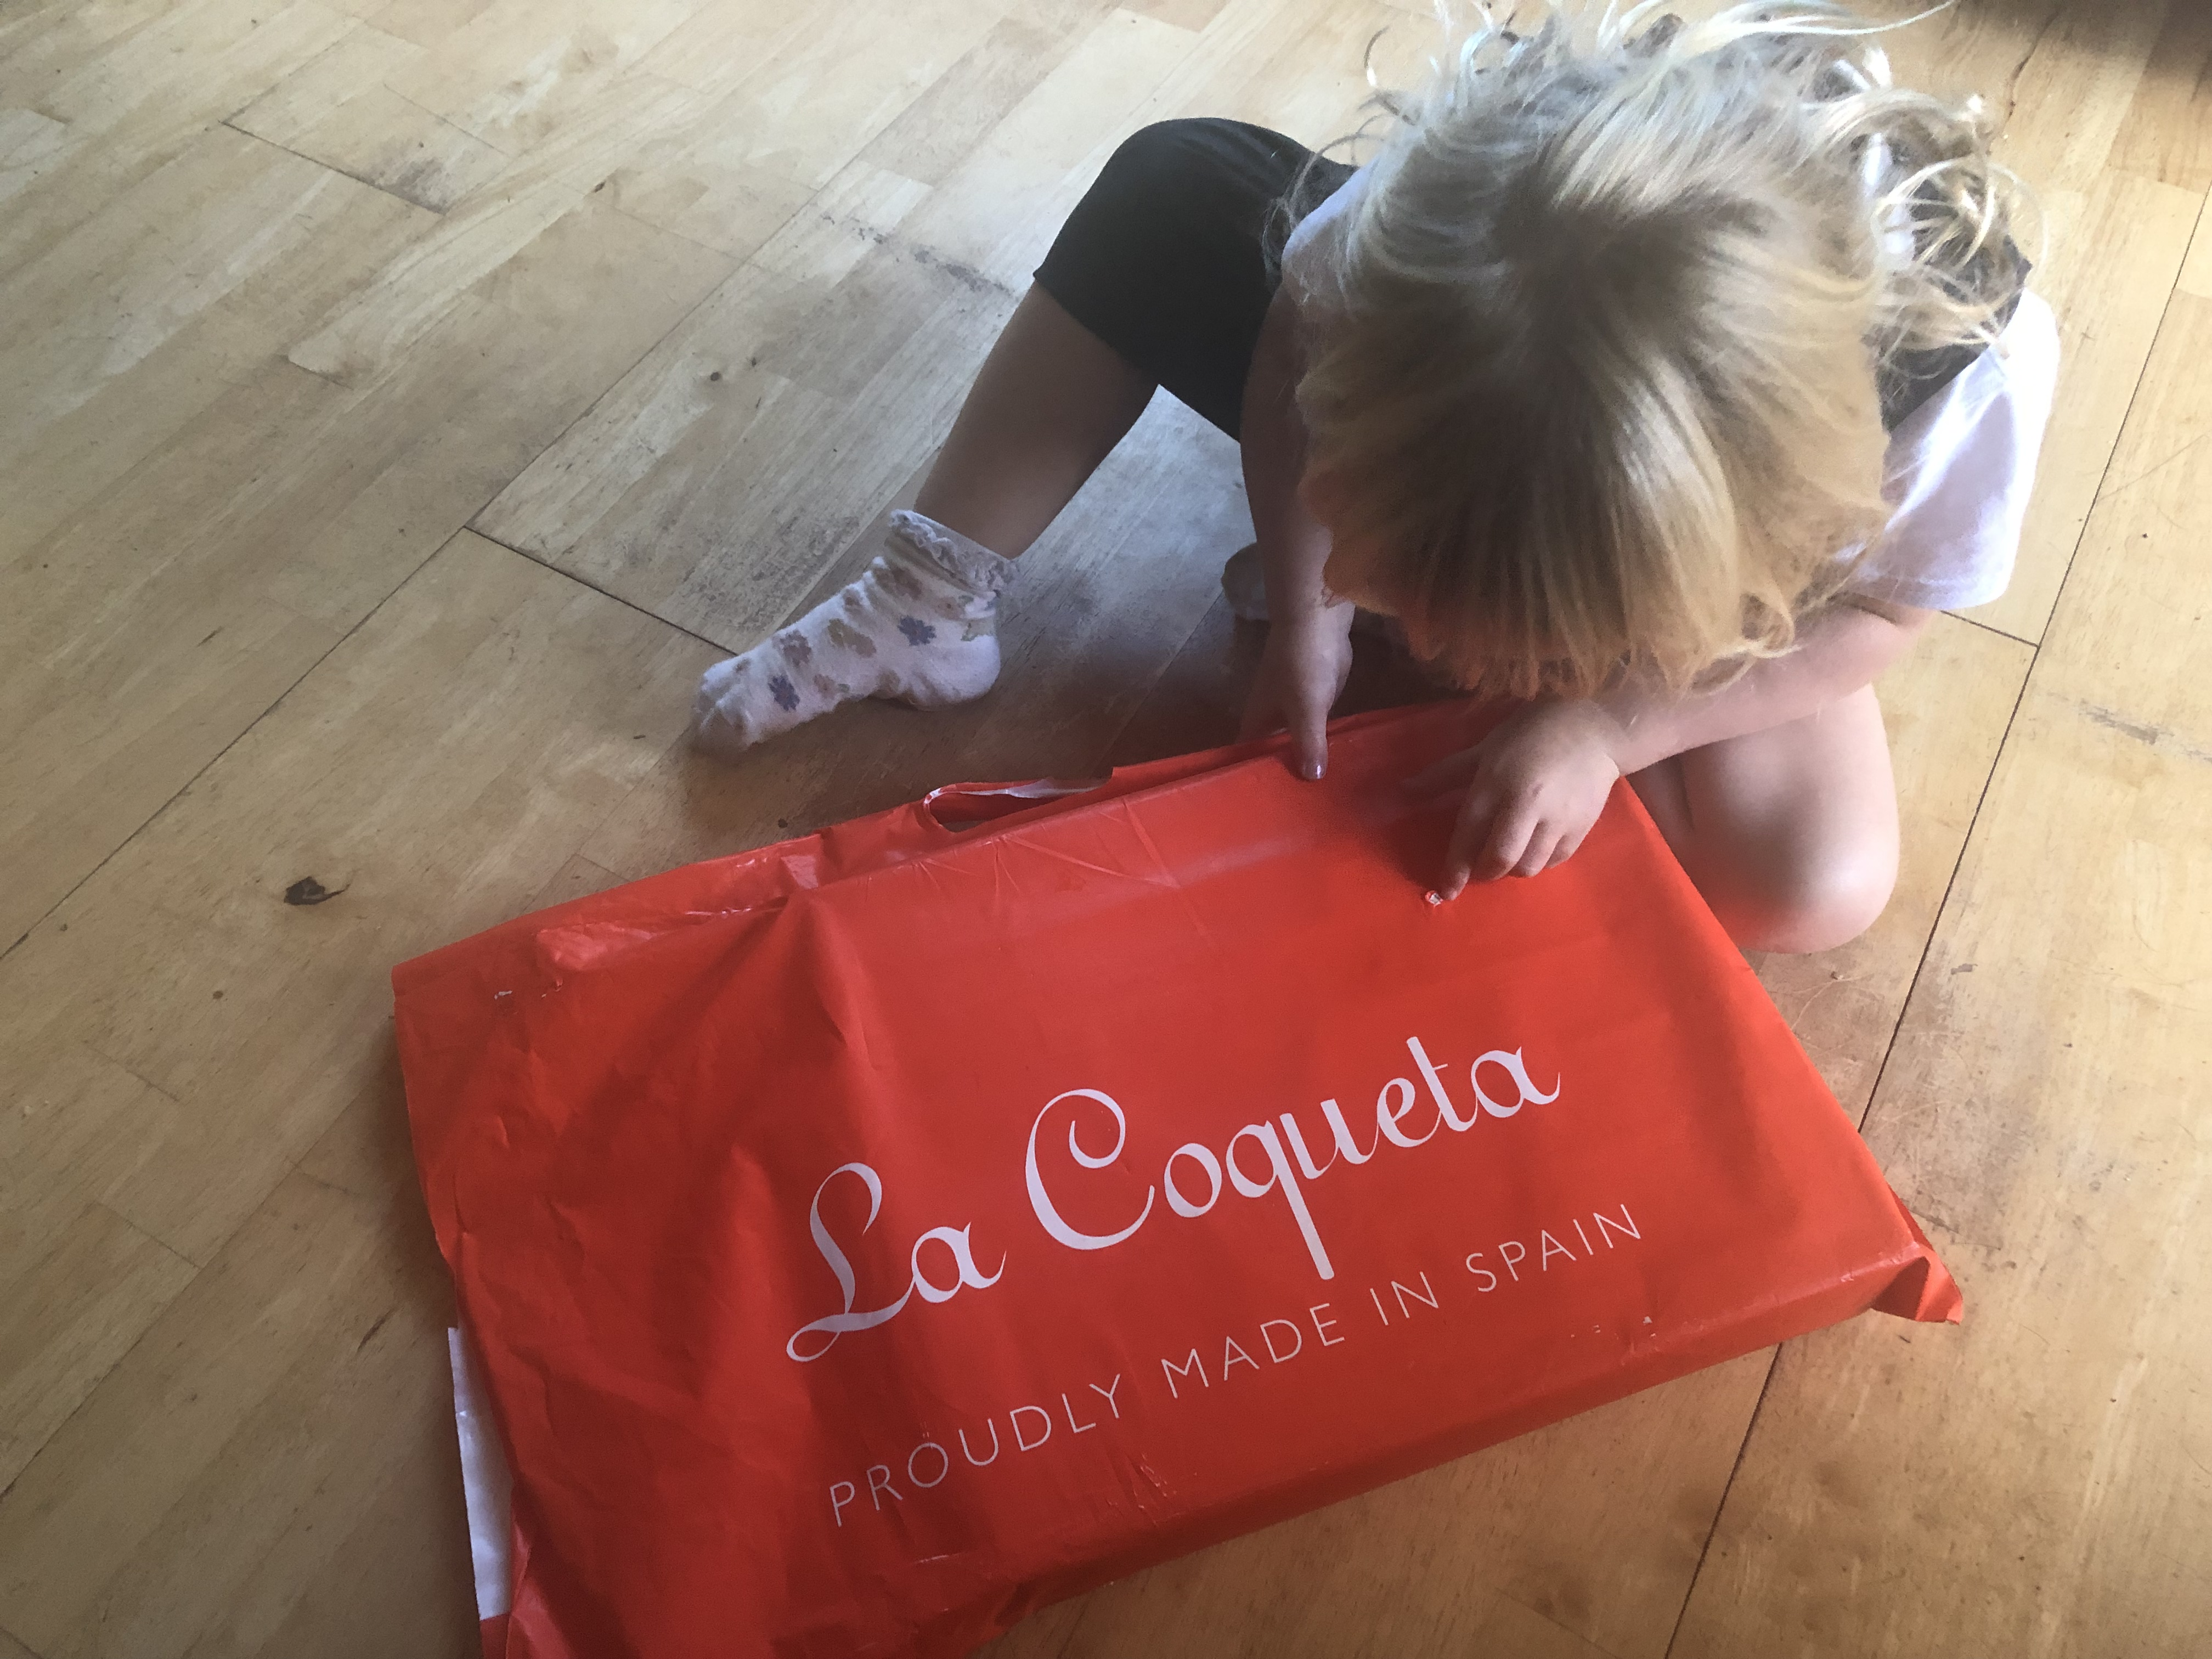 Little red riding hood – a review for La Coqueta